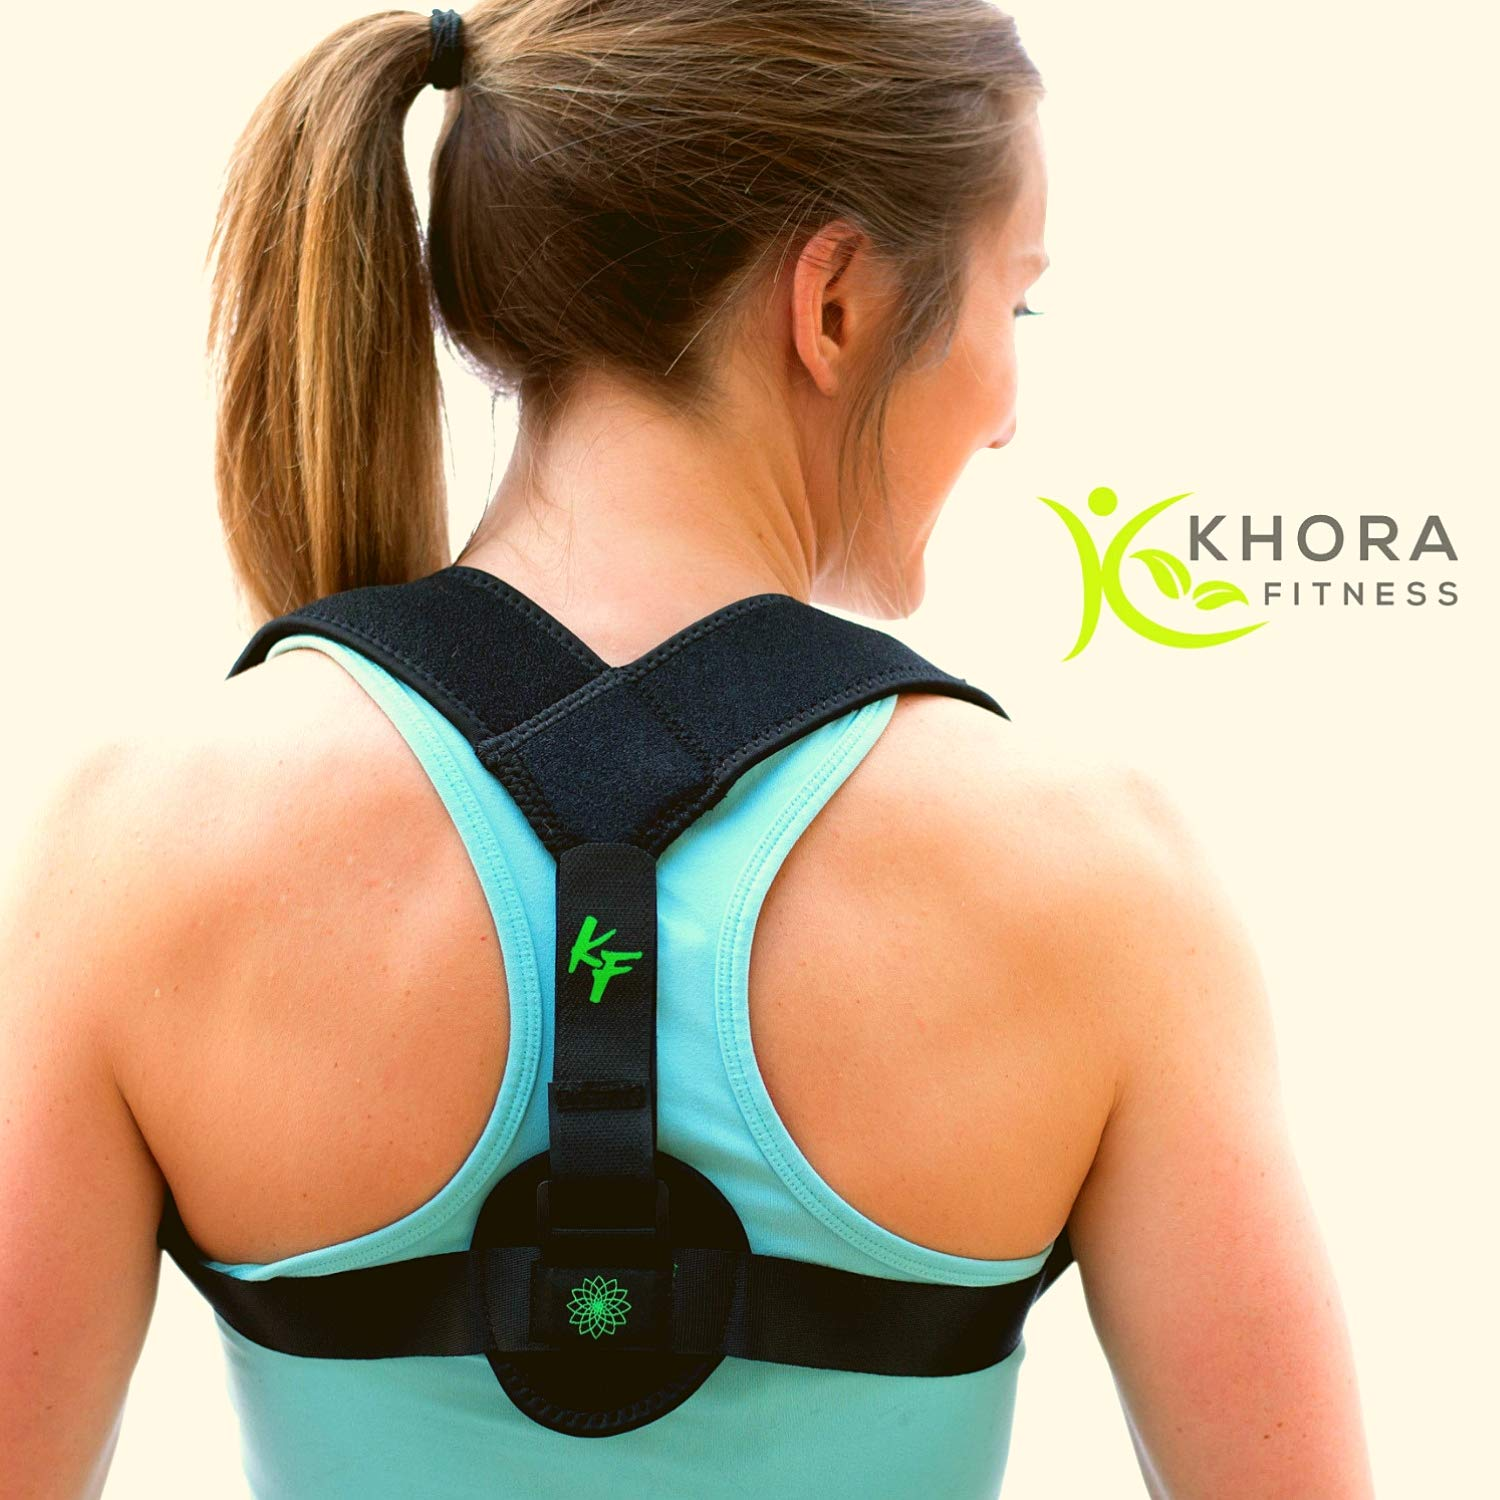 Khora Fitness Back Posture Corrector for Women - Adjustable Support - Breathable and Comfortable Under Clothes - Orthopedic and Therapeutic Shoulder/Back Correction and Straightening - Posture Trainer